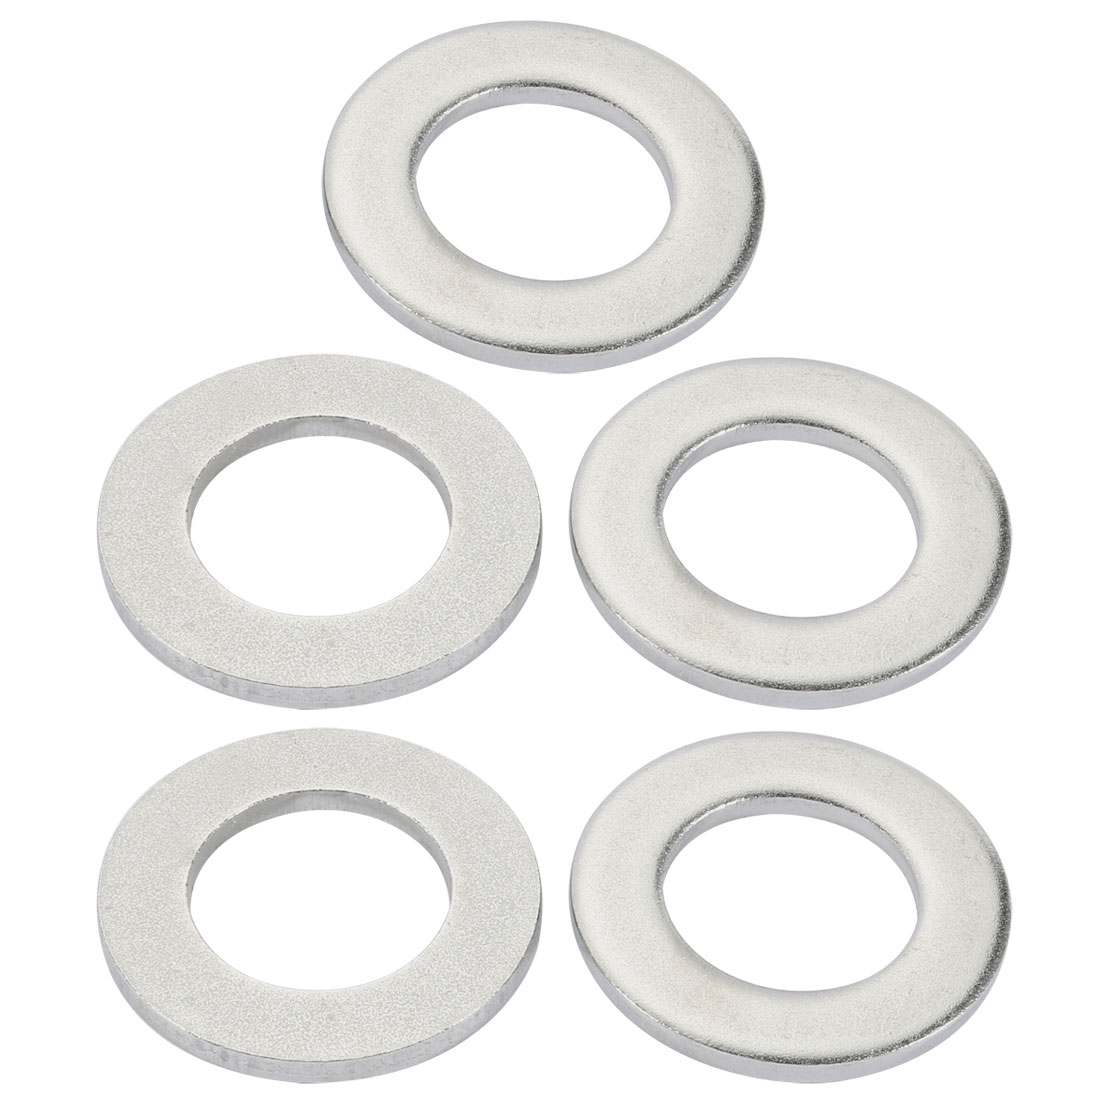 M33x60mmx5mm DIN125 316 Stainless Steel Flat Washer Silver Tone 5pcs